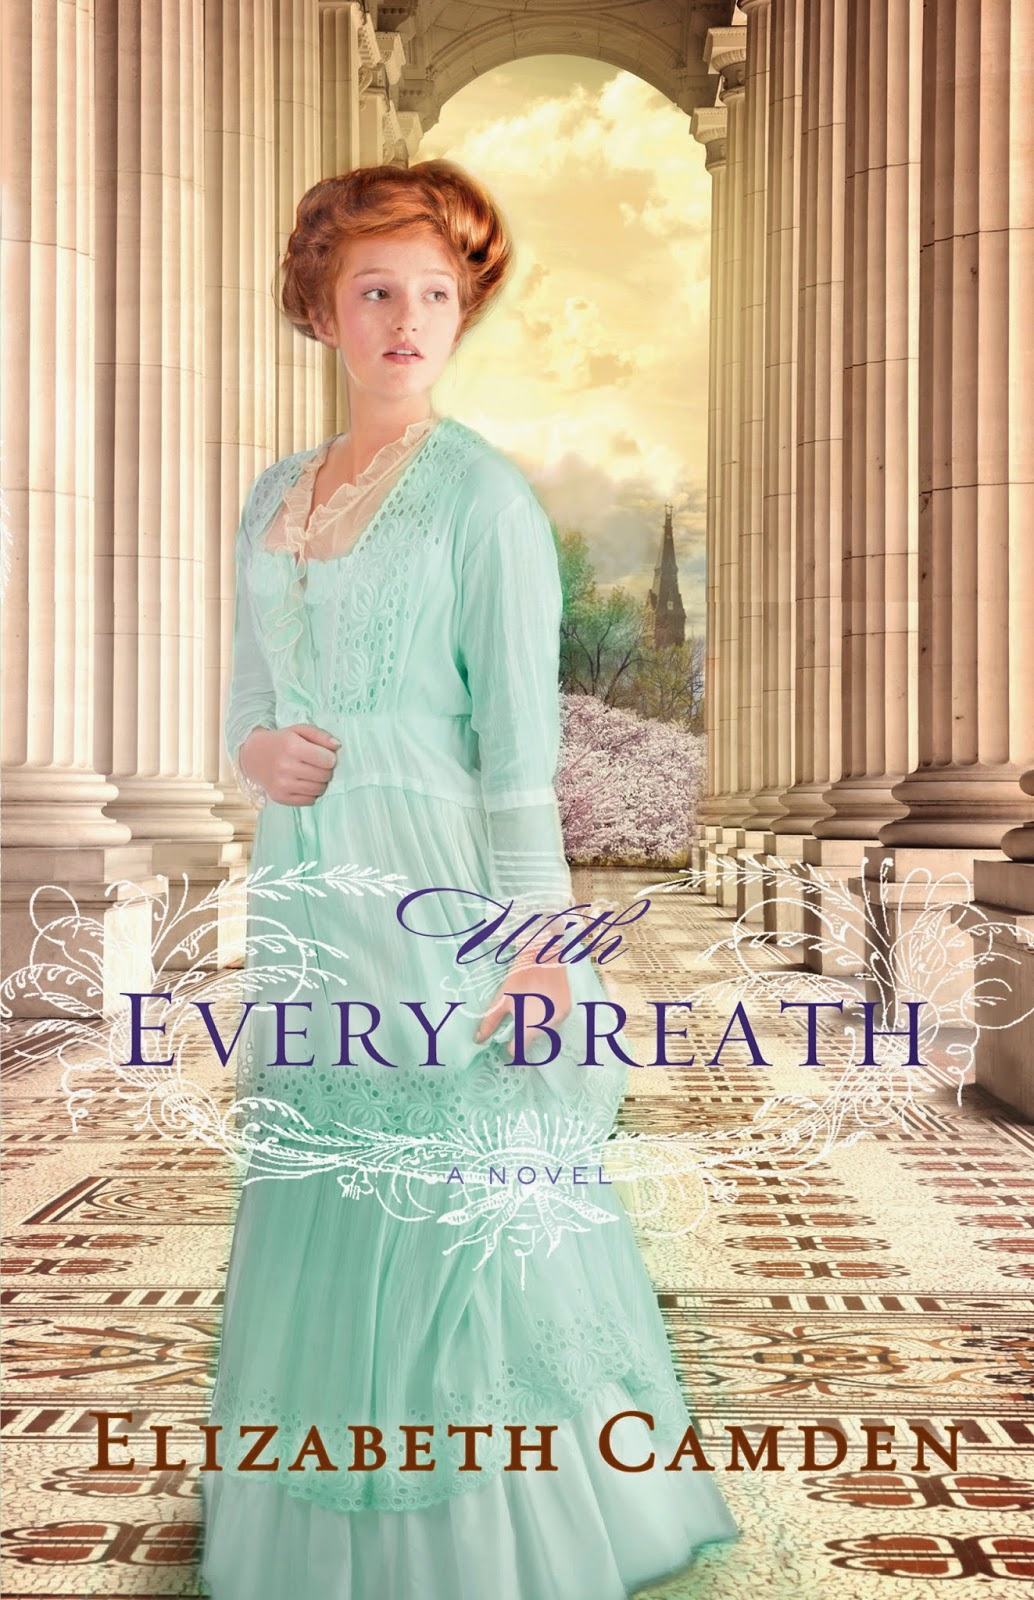 book review of With Every Breath by Elizabeth Camden (Bethany House) by papertapepins